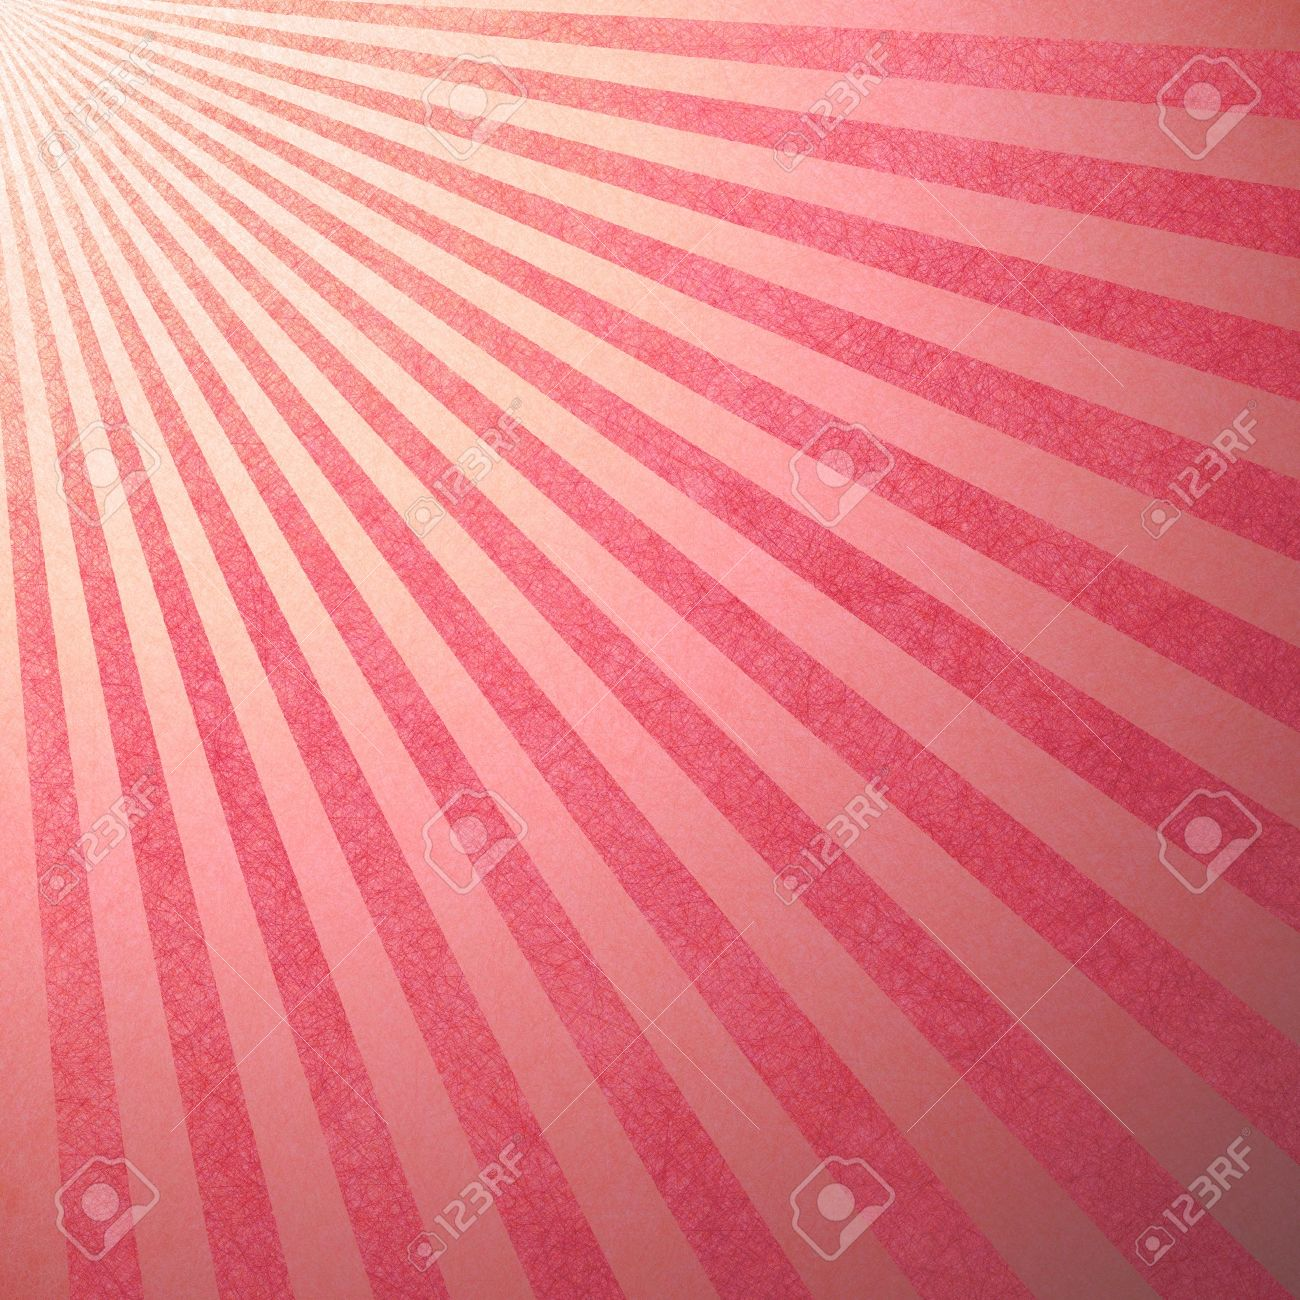 striped candy cane background, Christmas or holiday colors of abstract pink background stripes, faint vintage grunge background texture retro style design pattern with sun beams streaming from corner Stock Photo - 19744768